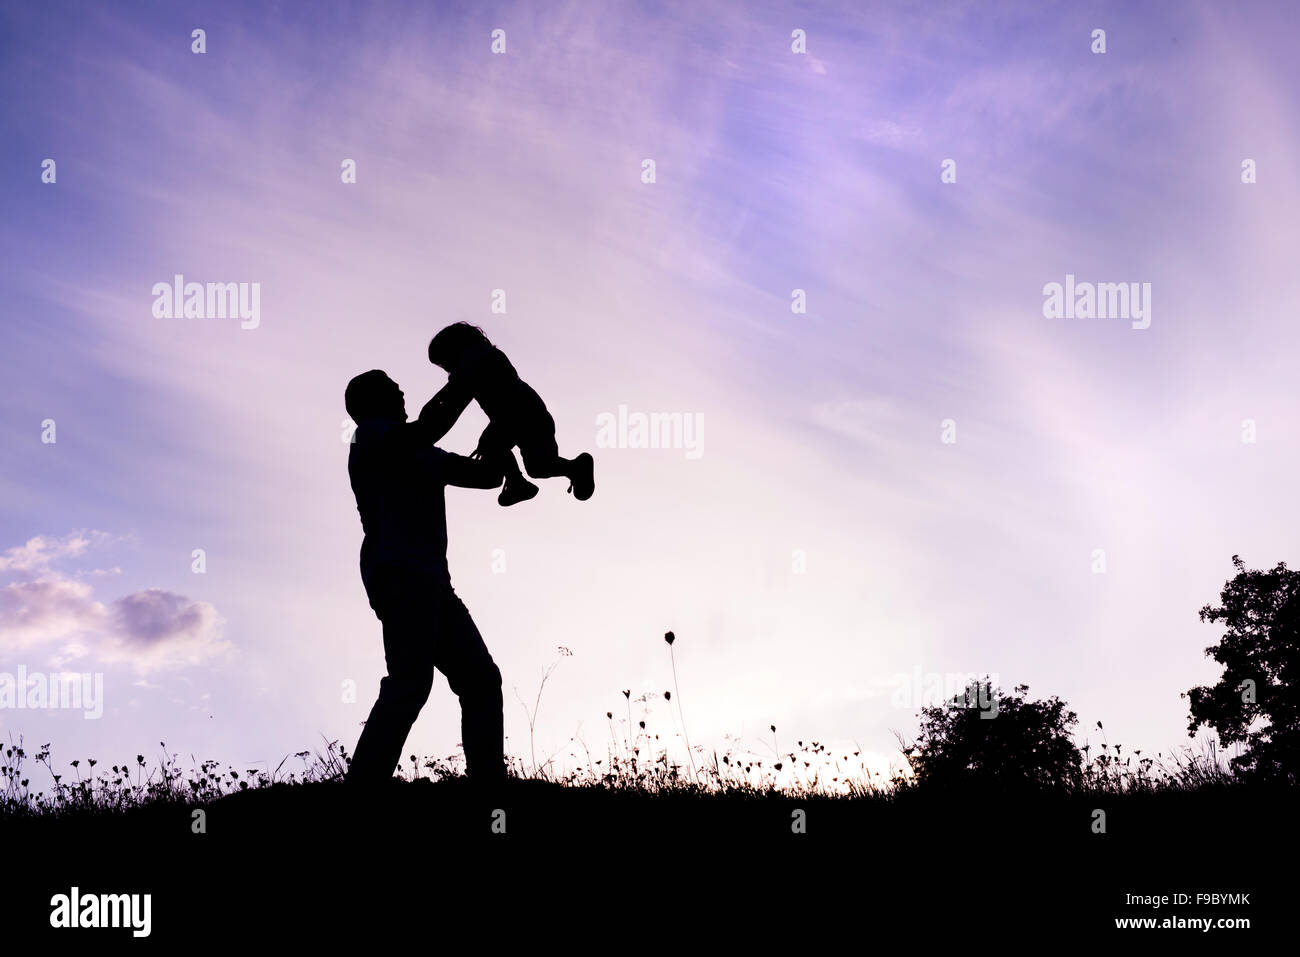 Silhouette of happy father having fun with his son - Stock Image